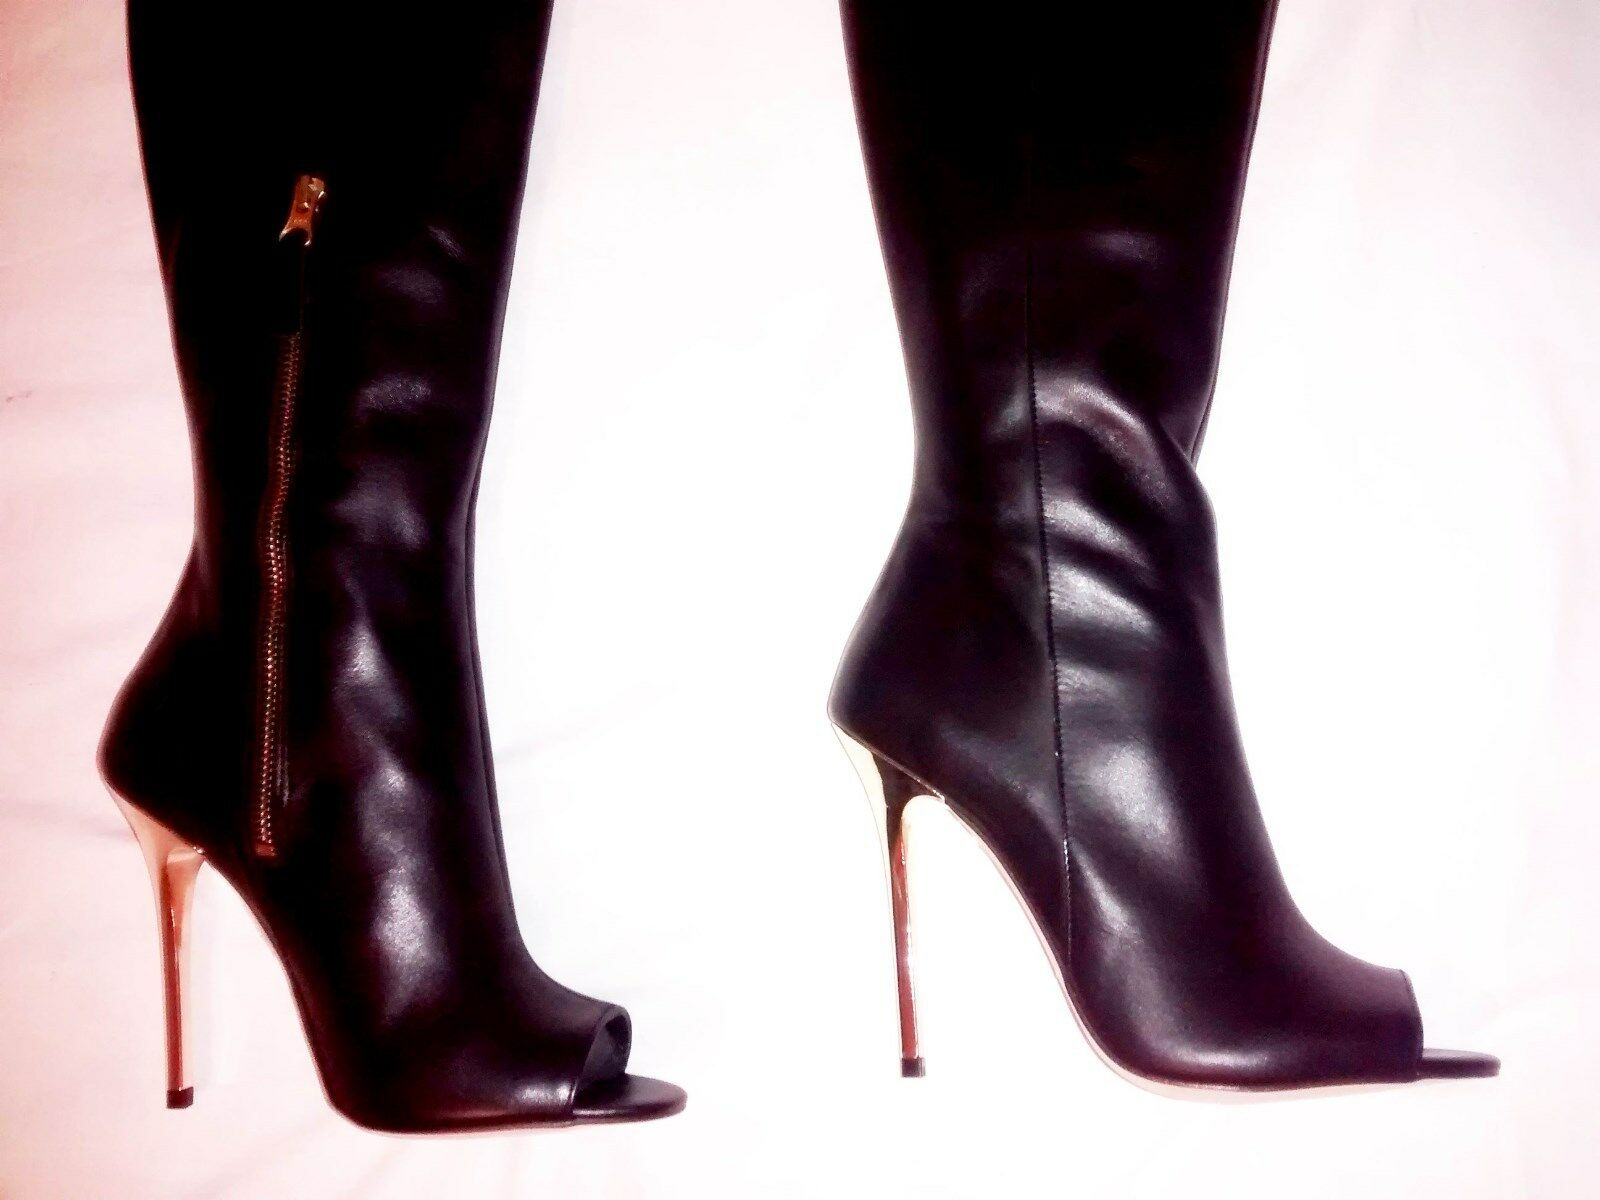 Grandes zapatos con descuento ICONIC BNIB 6 39 OFFICE BLACK LEATHER PEEP TOE OVER THE KNEE OTK THIGH BOOTS